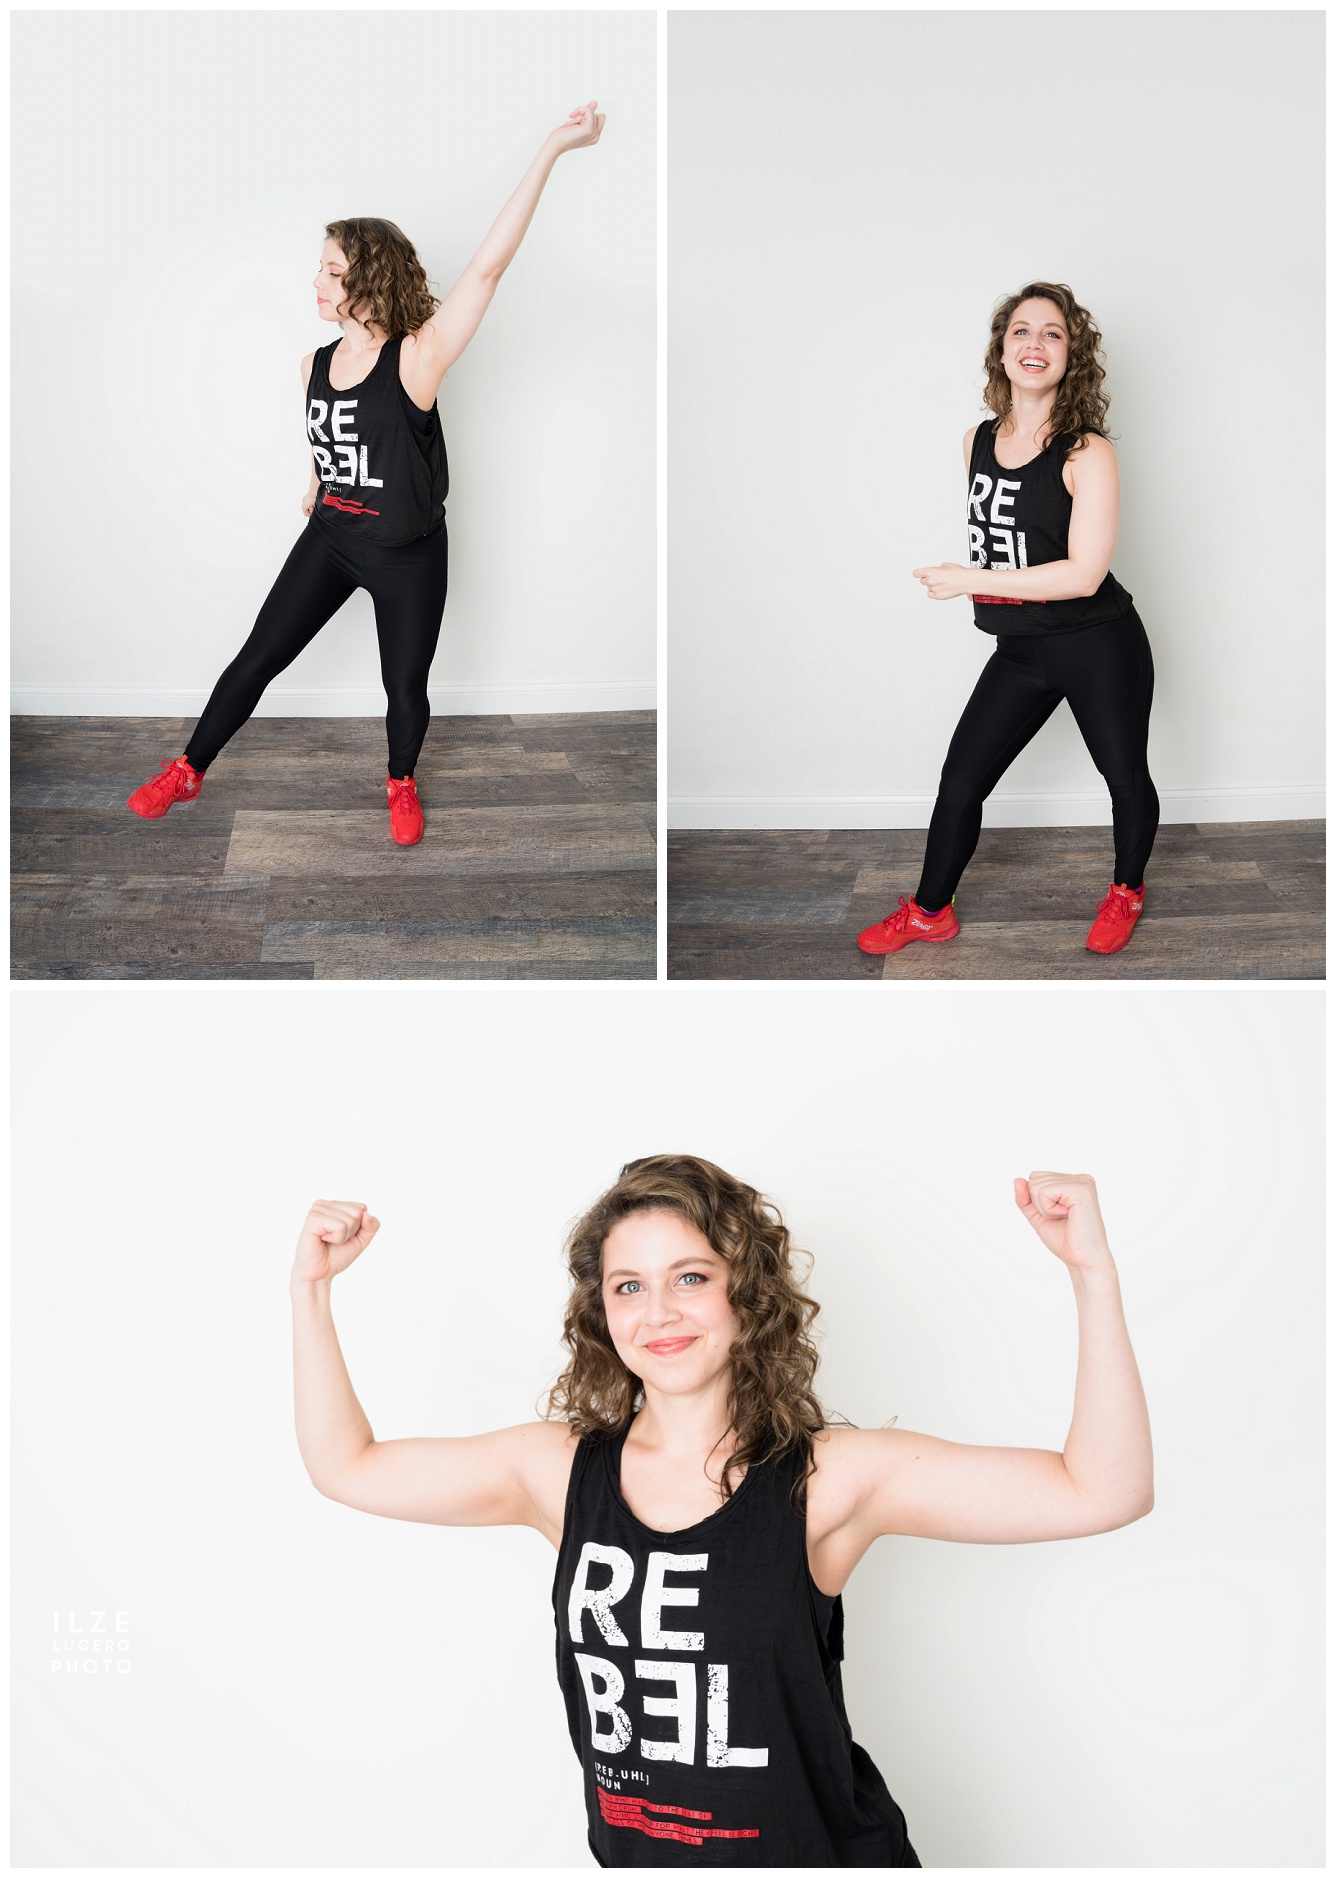 Zumba instructor photo shoot